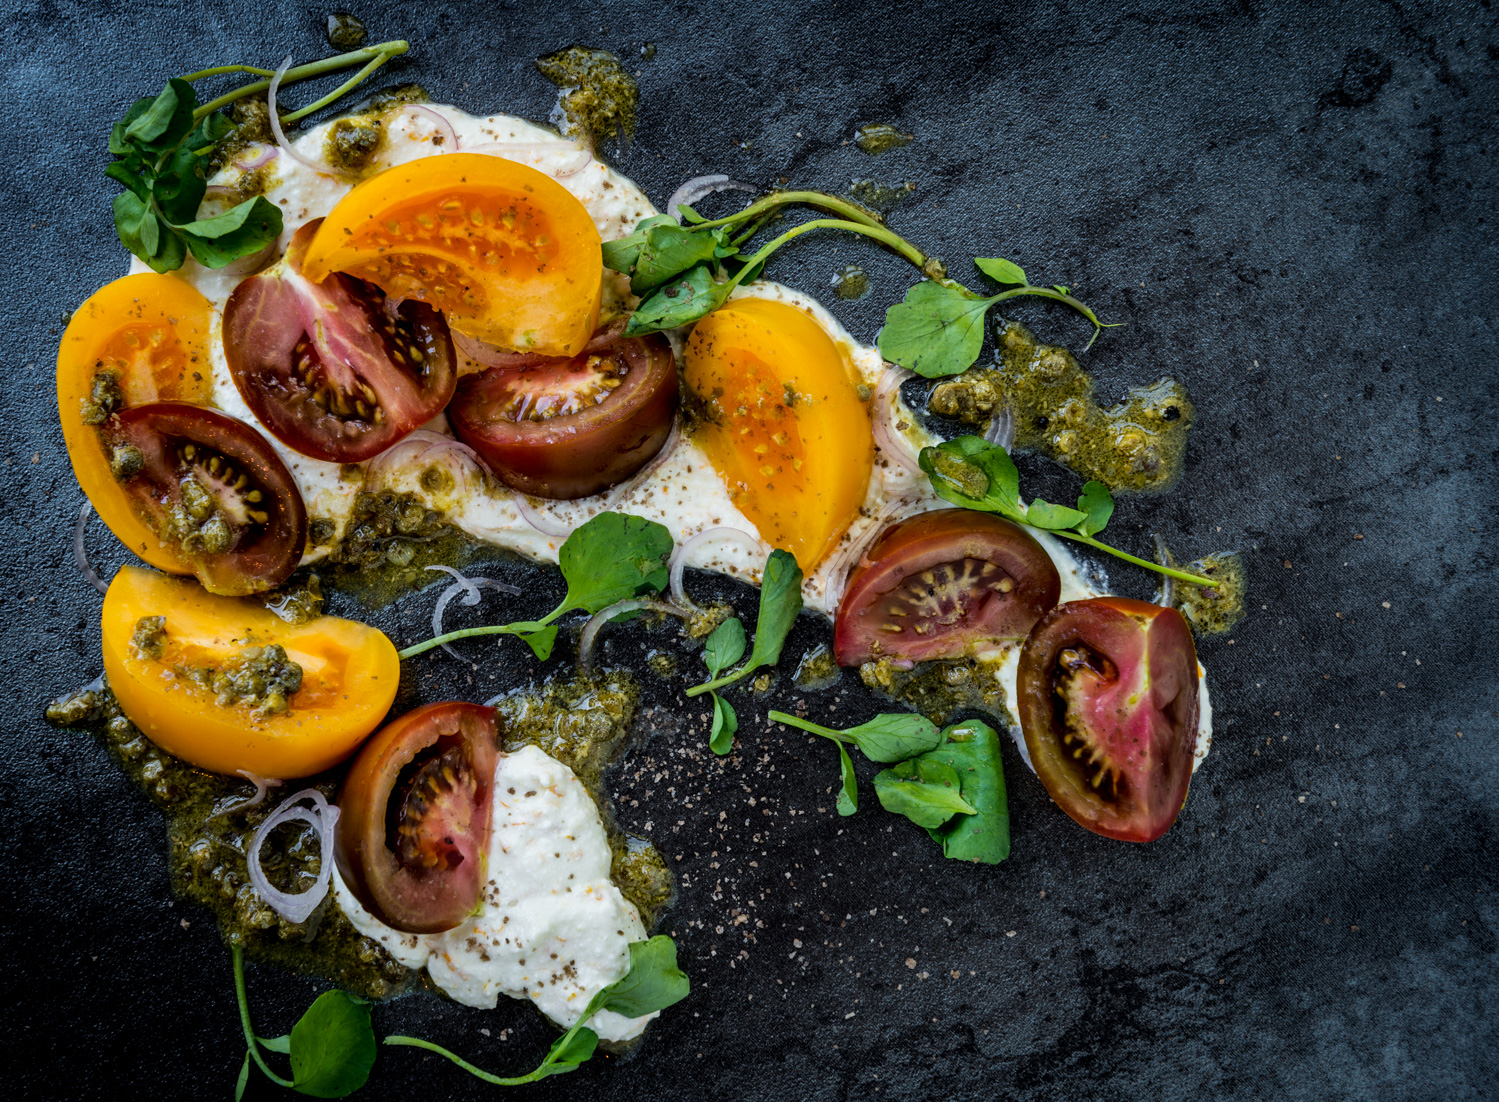 In the spirit of Campania, Italy  : Heirloom tomatoes, Meyer lemon ricotta, watercress, caper vinaigrette, shallot, smoked sea salt : Pair with Falanghina, Fiano or Greco from Campania, Italy